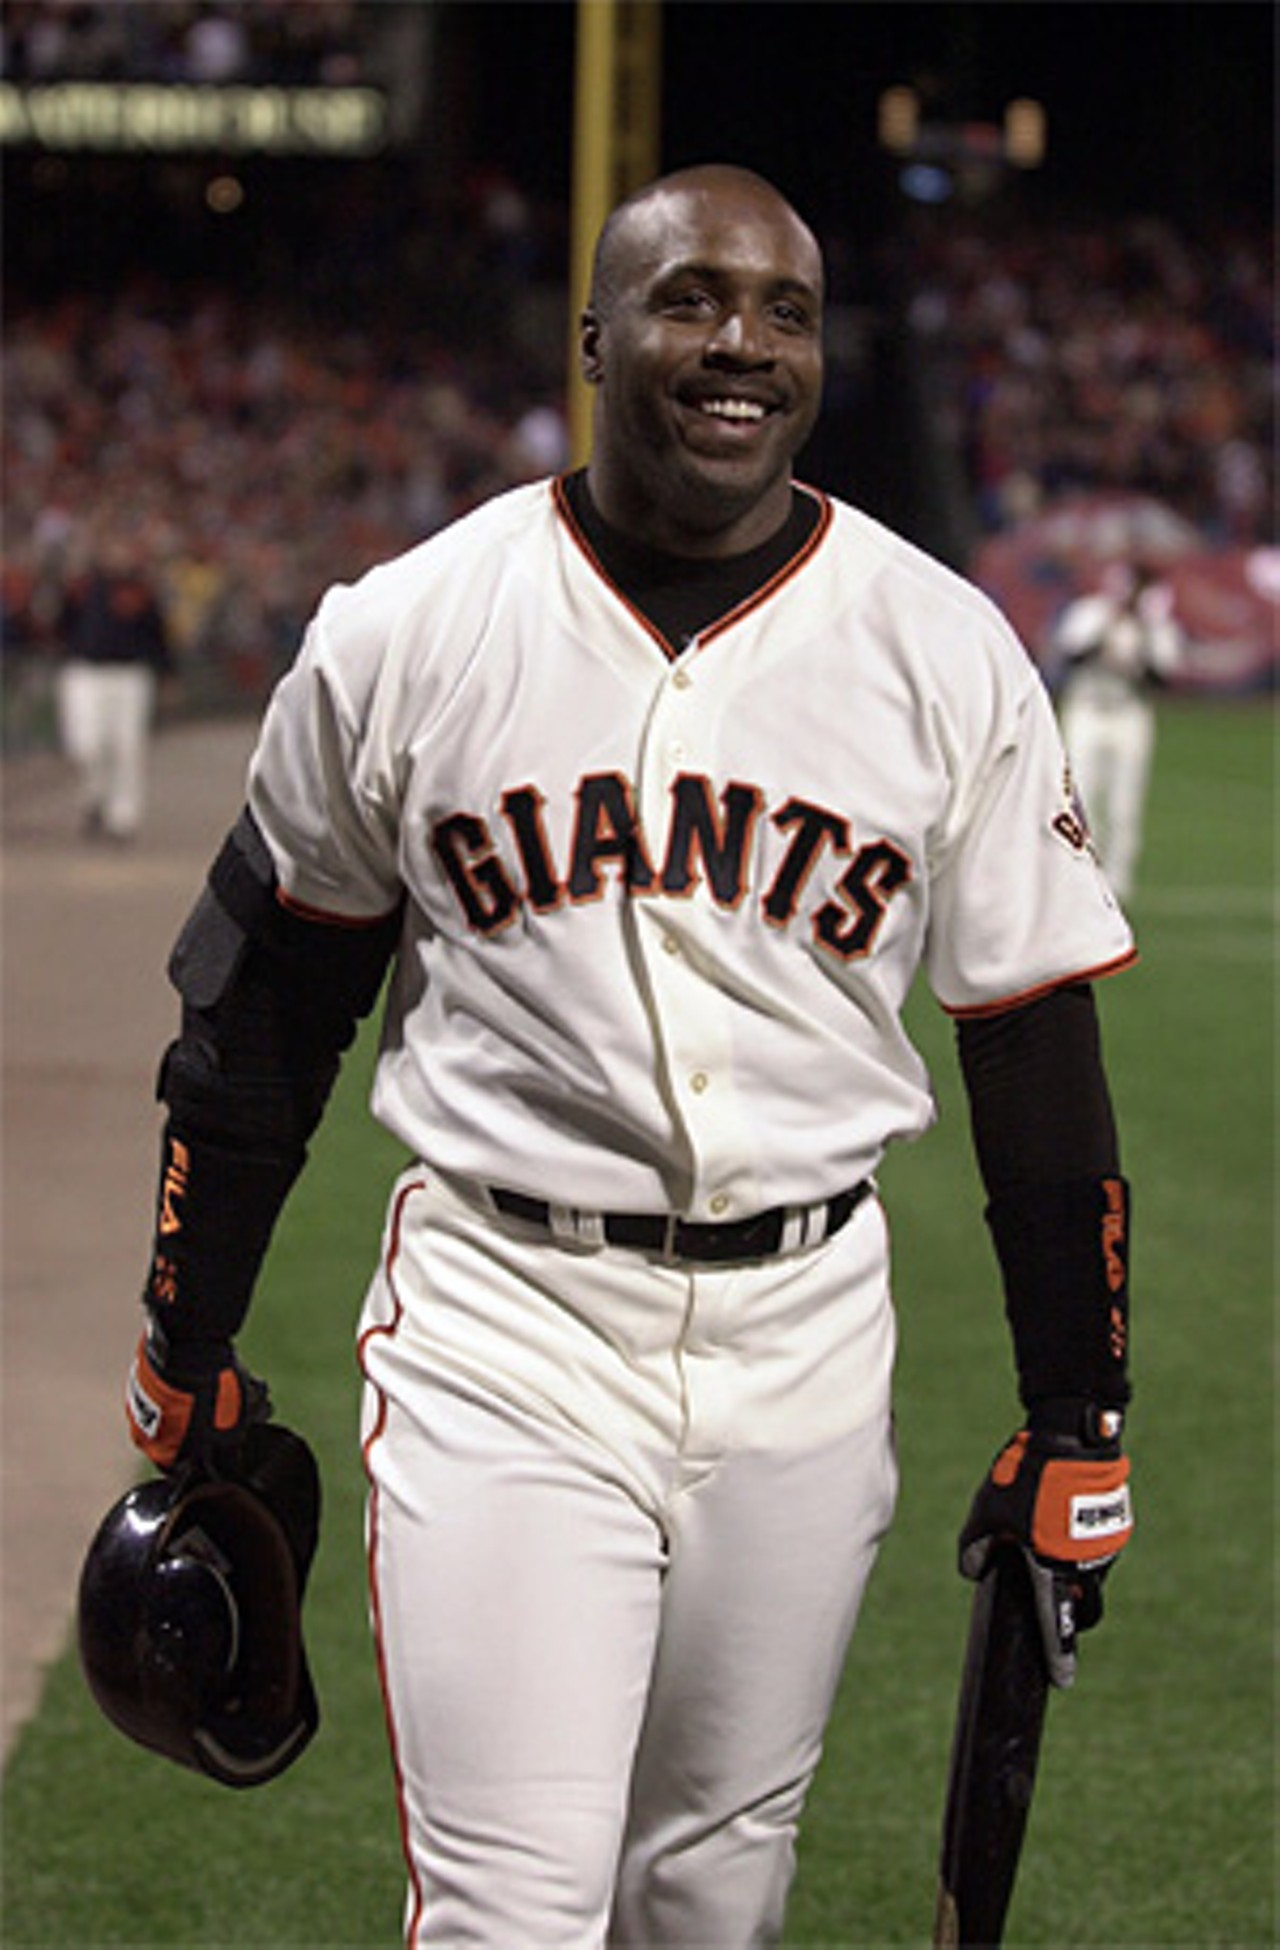 barry bonds Watch video barry bonds will have his no 25 jersey retired by san francisco giants in august no, he's not in the hall of fame, but the all-time home run leader is indeed a giants legend.